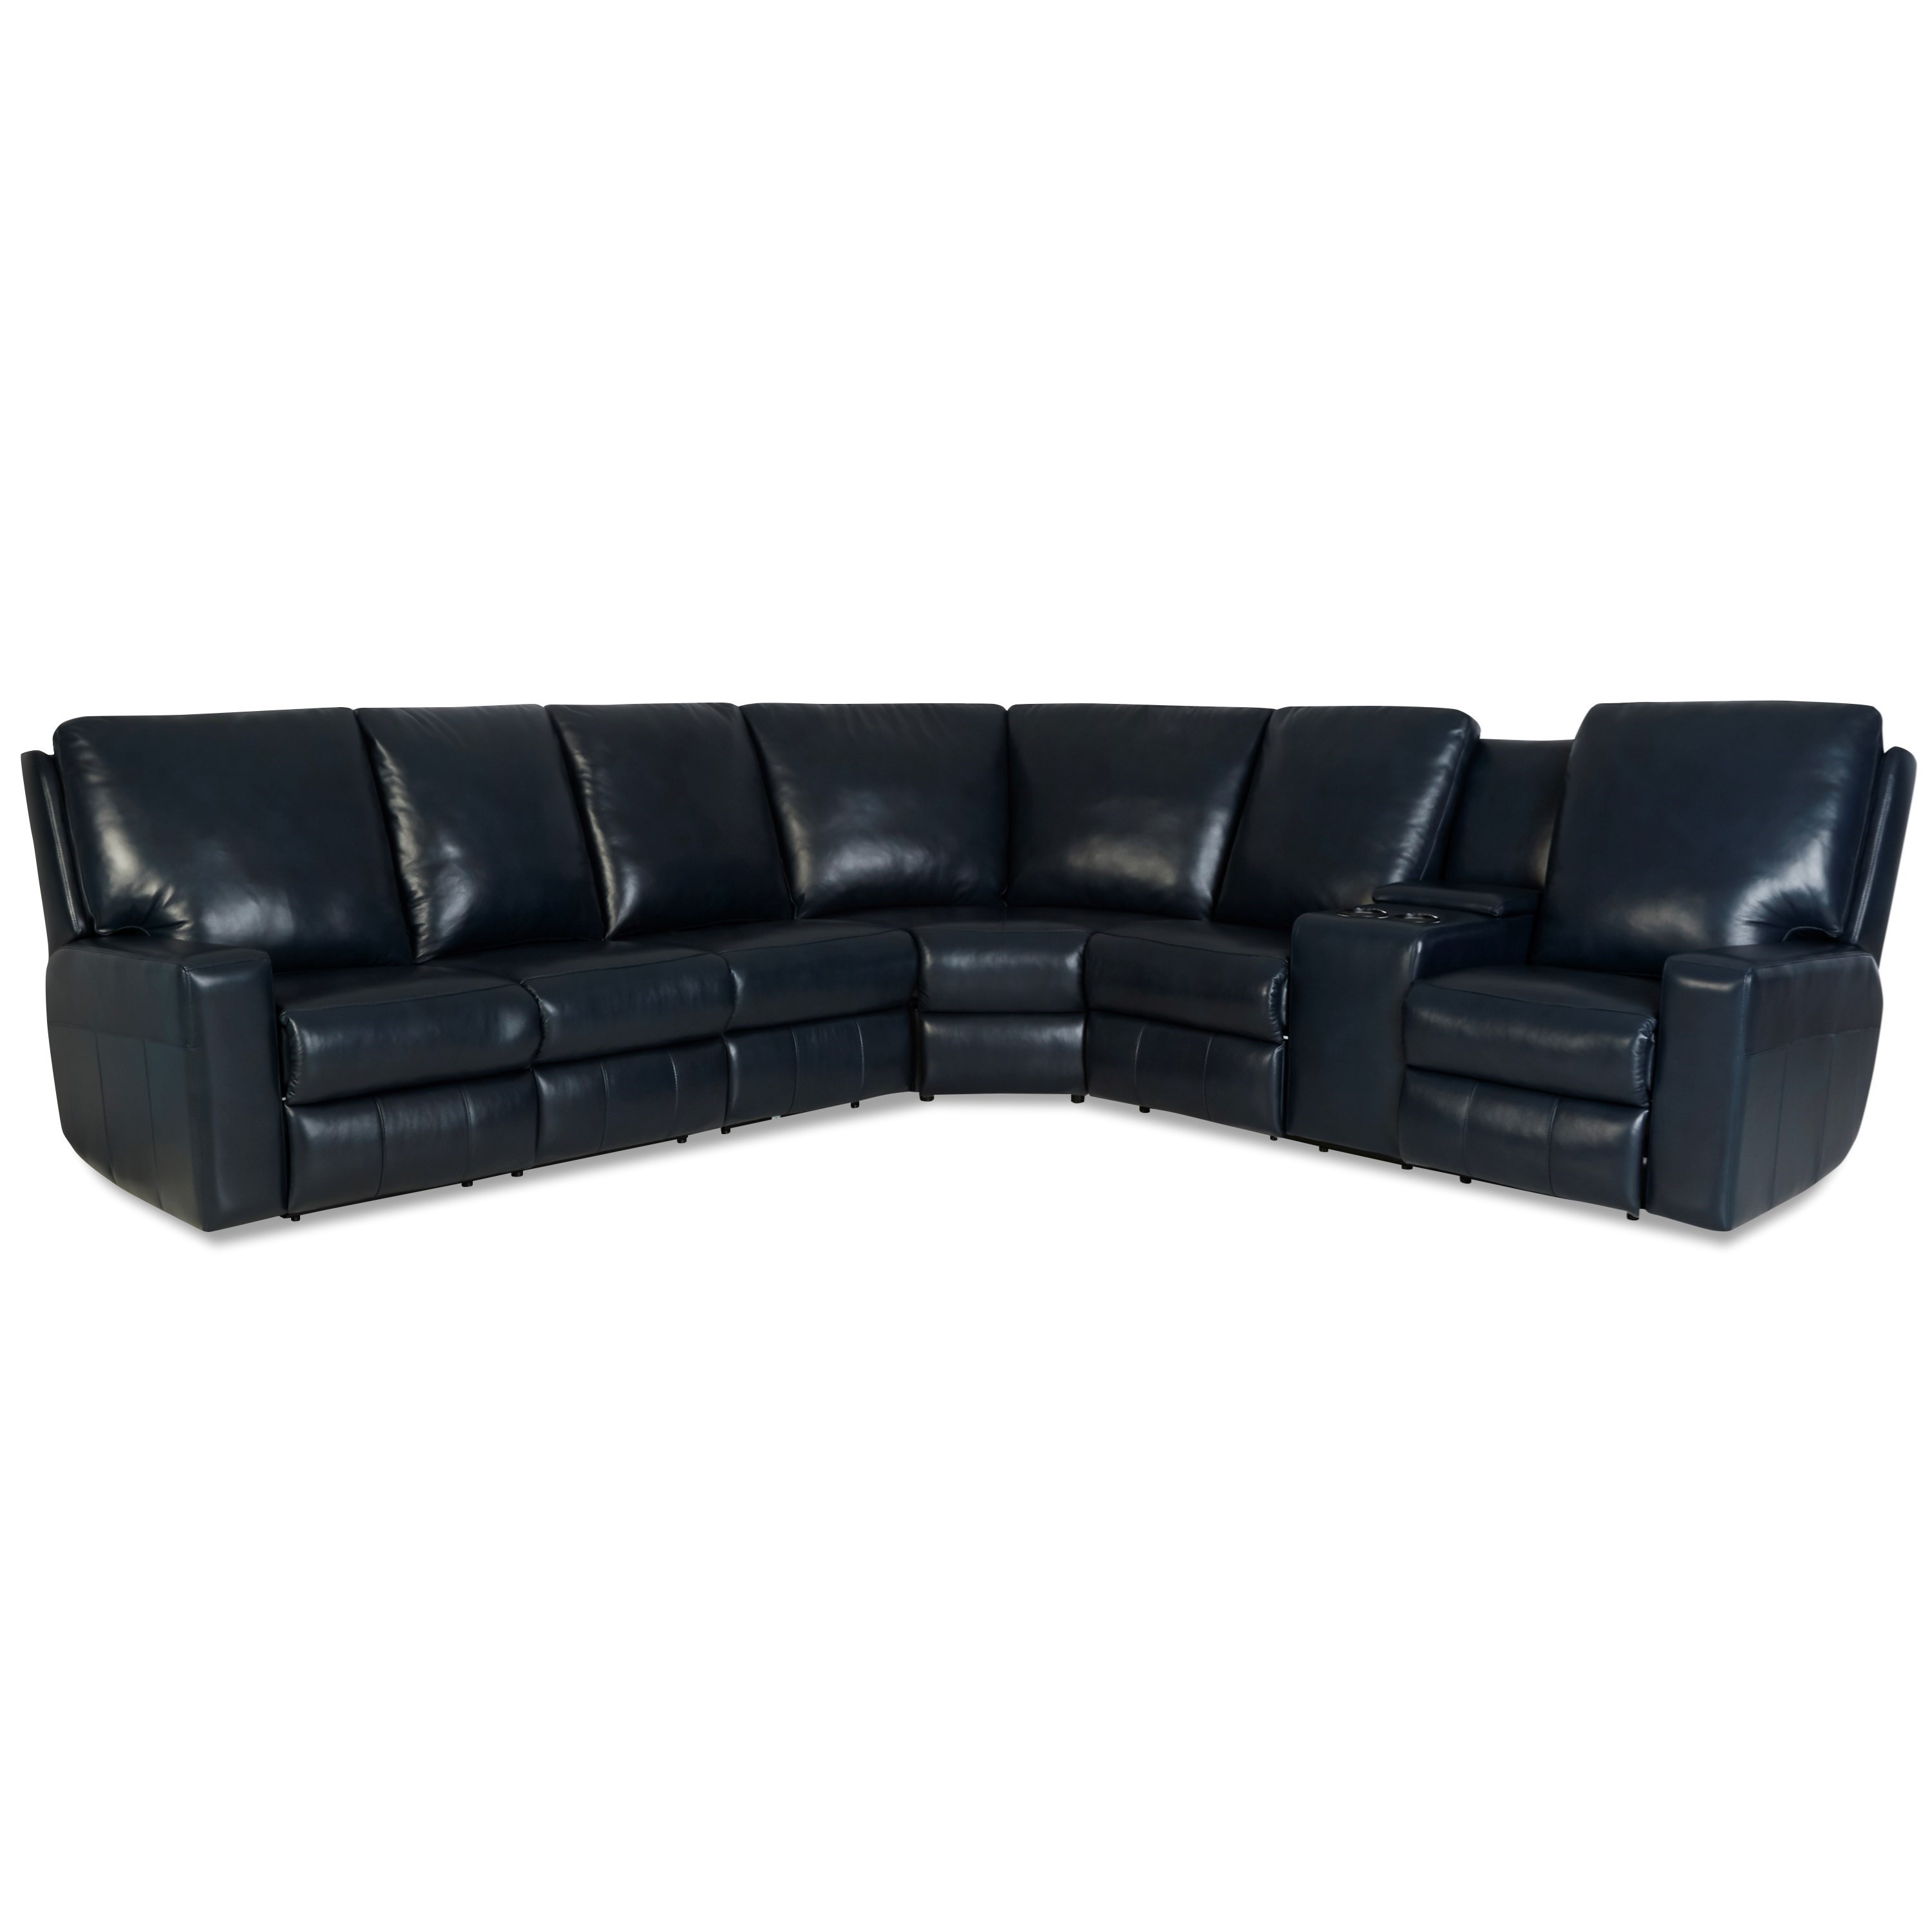 Alliser Power Reclining Sectional w/ Pwr Headrests by Klaussner at Van Hill Furniture